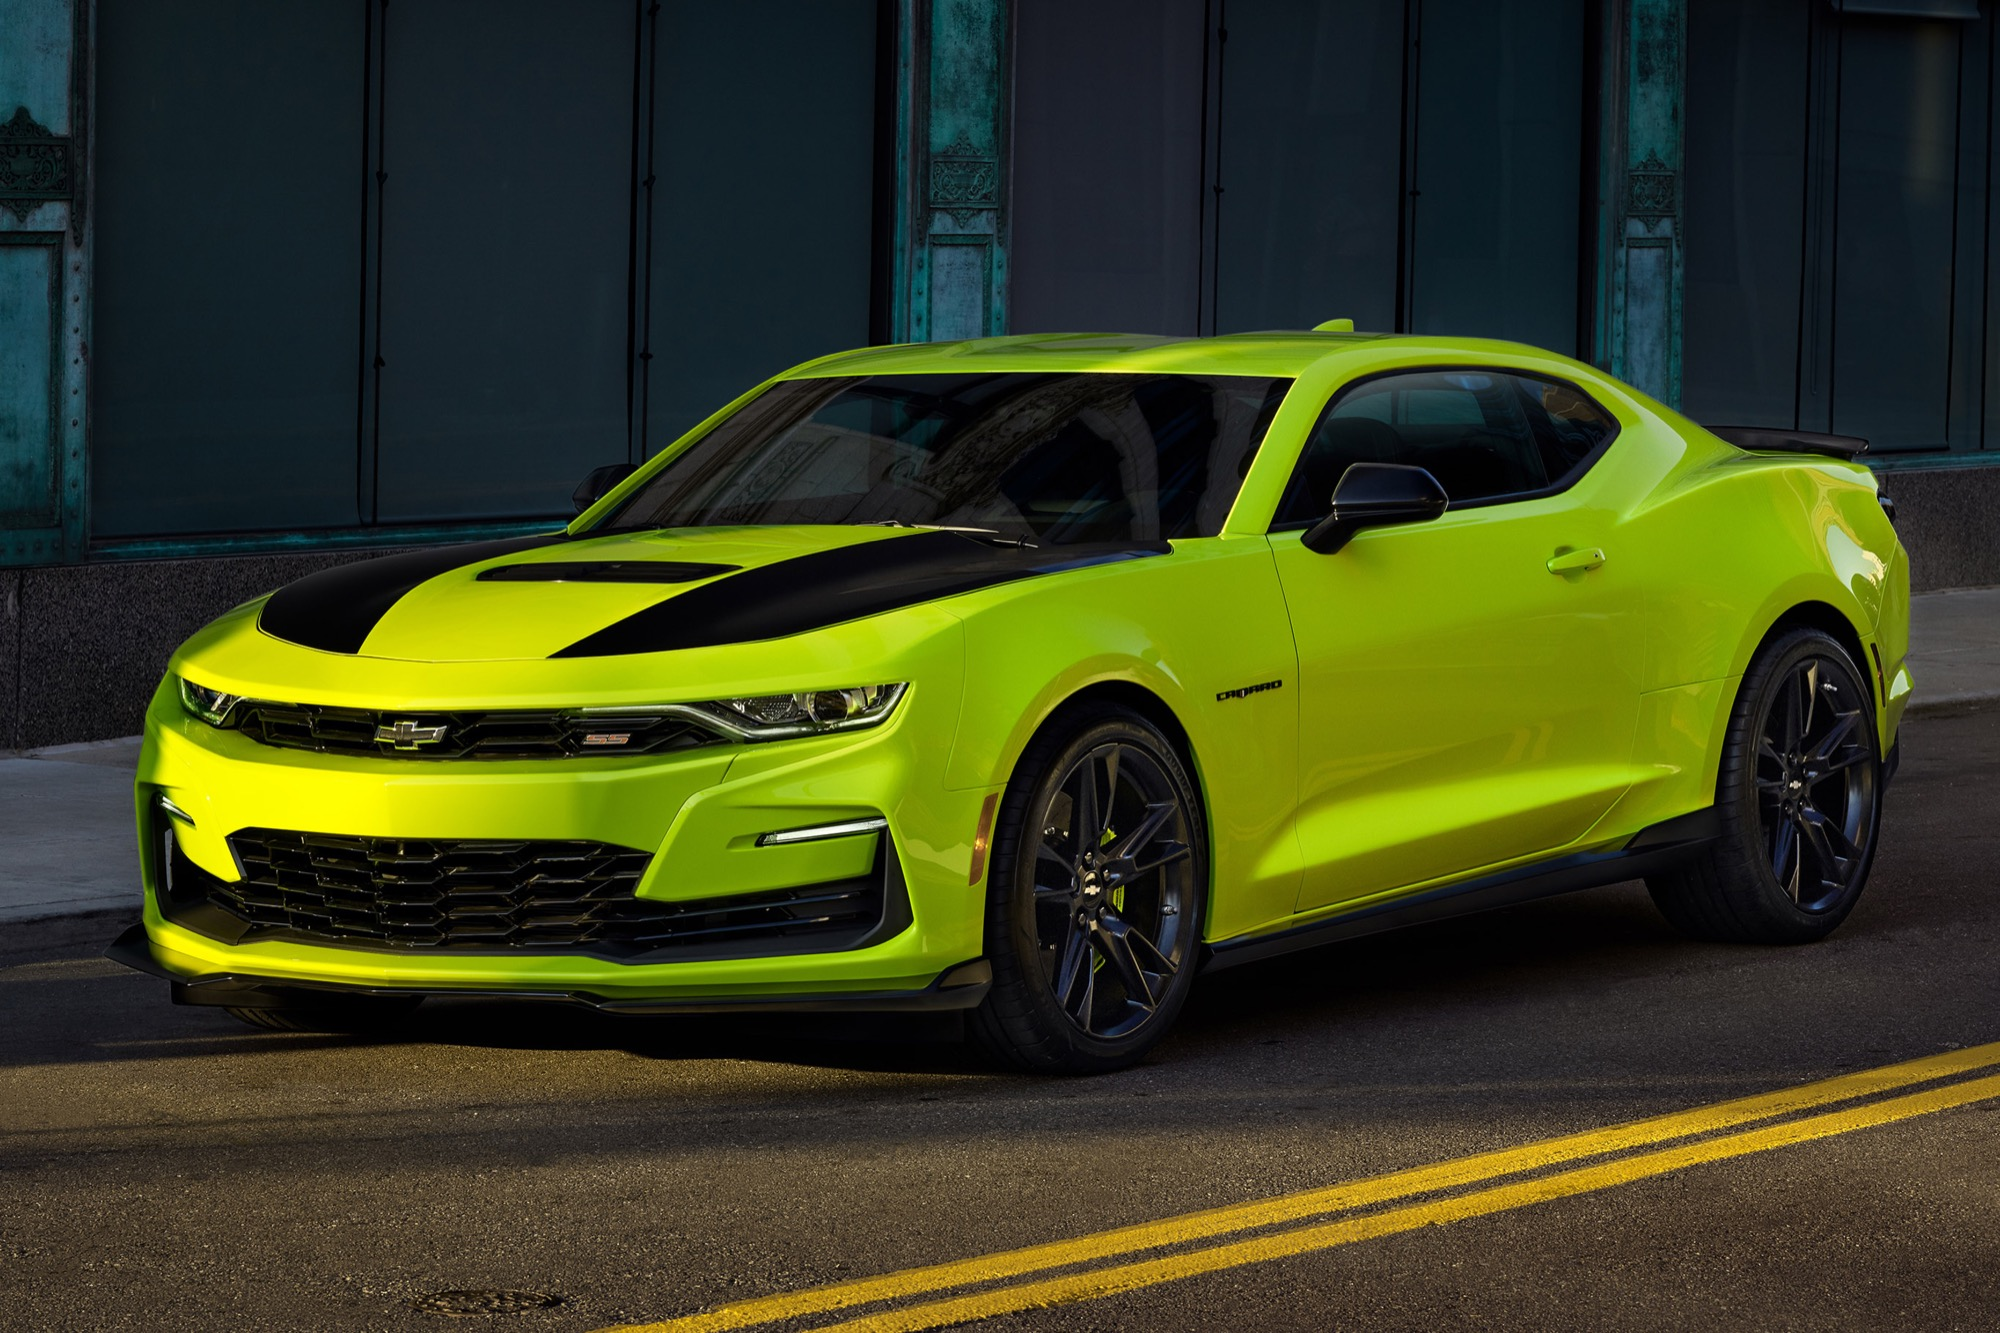 Chevy Announces New Shock Color For 2019 Camaro | GM Authority